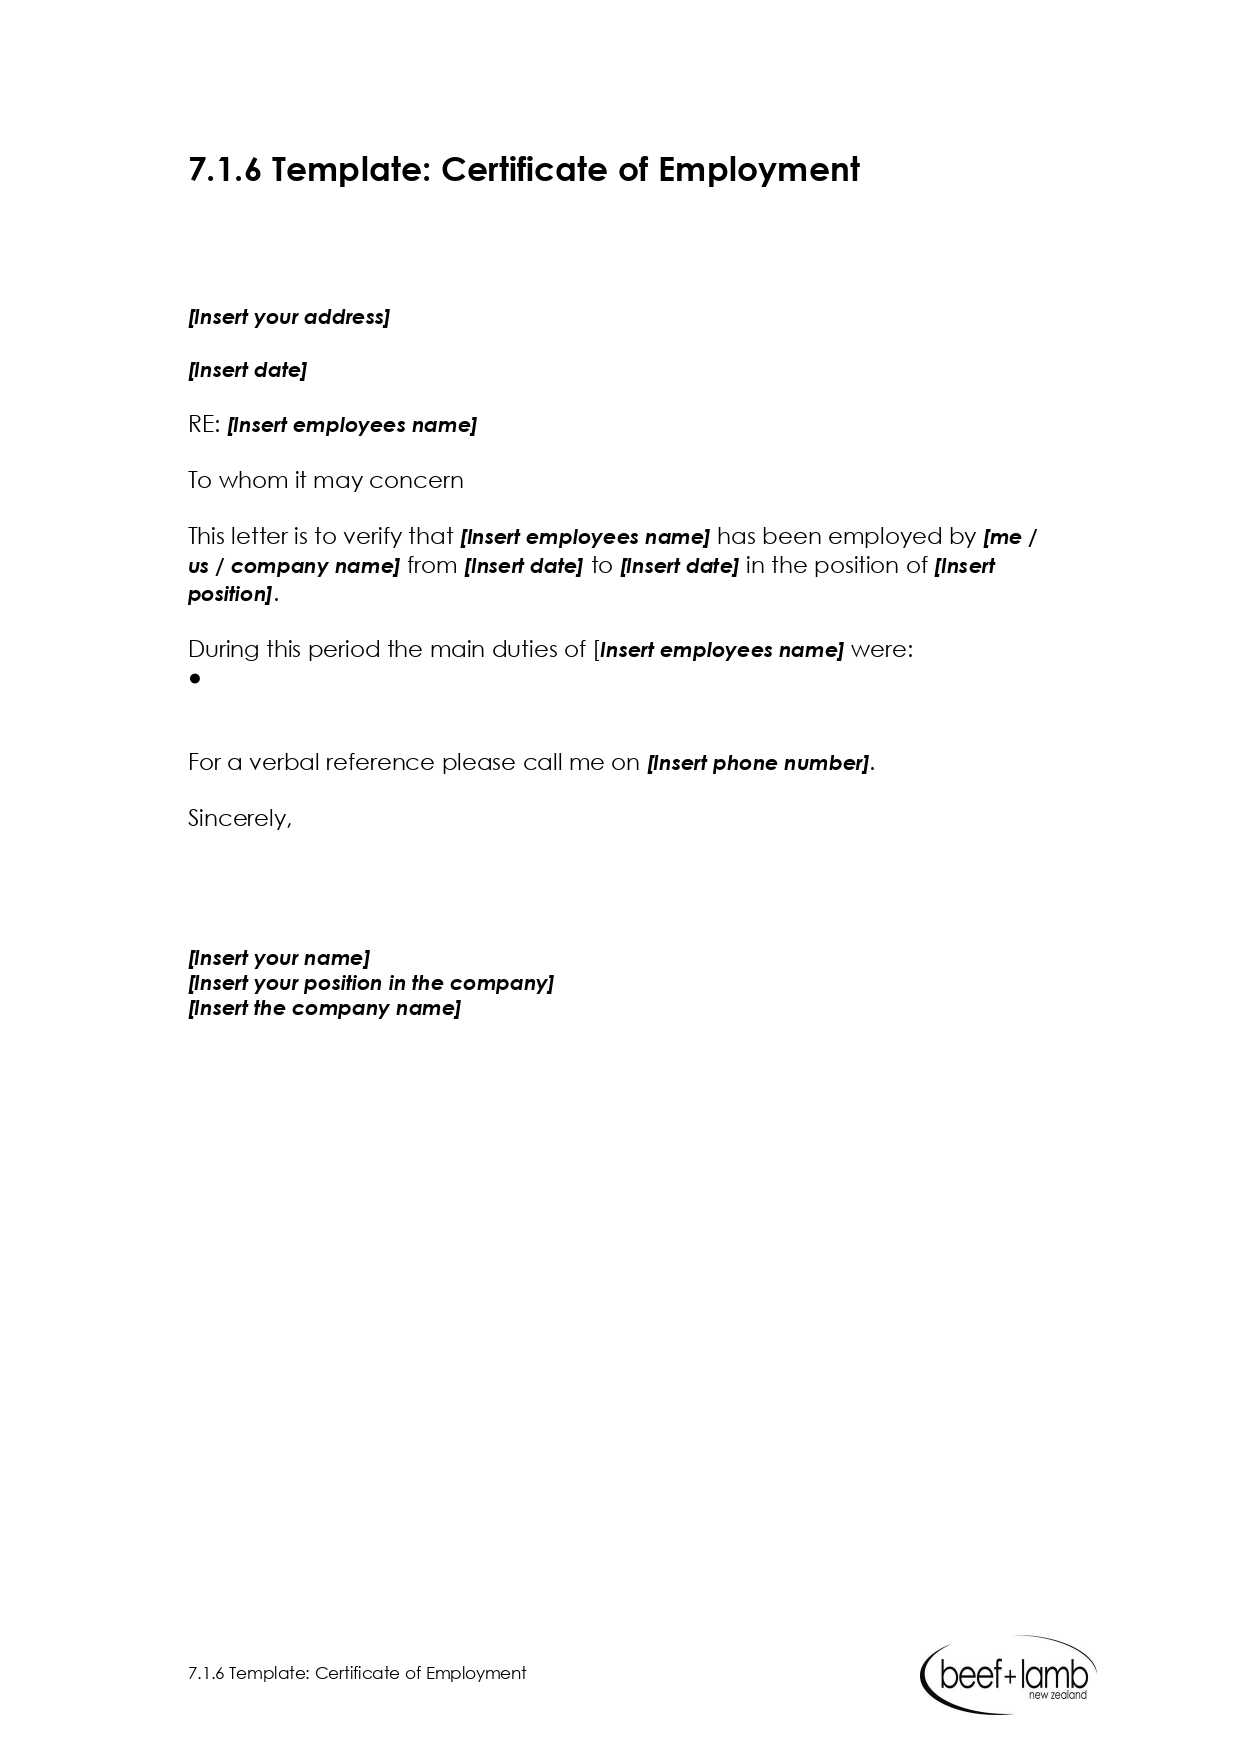 Editable Certificate Of Employment Template - Google Docs Regarding Certificate Of Employment Template